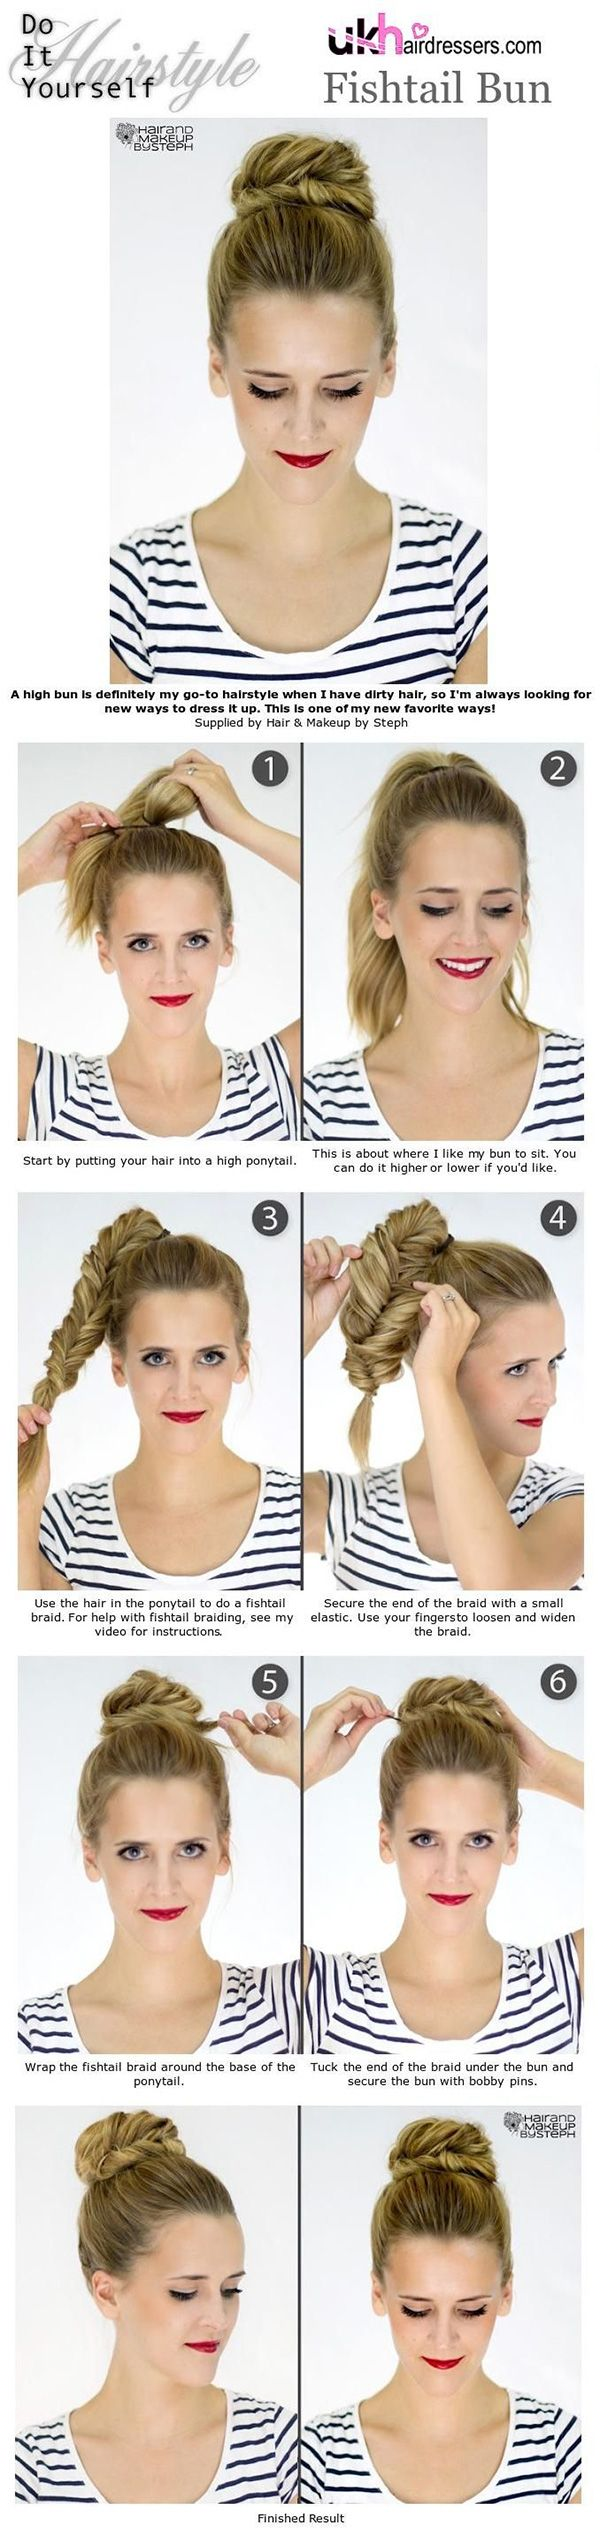 15 easy no-heat hairstyles for dirty hair, long or short